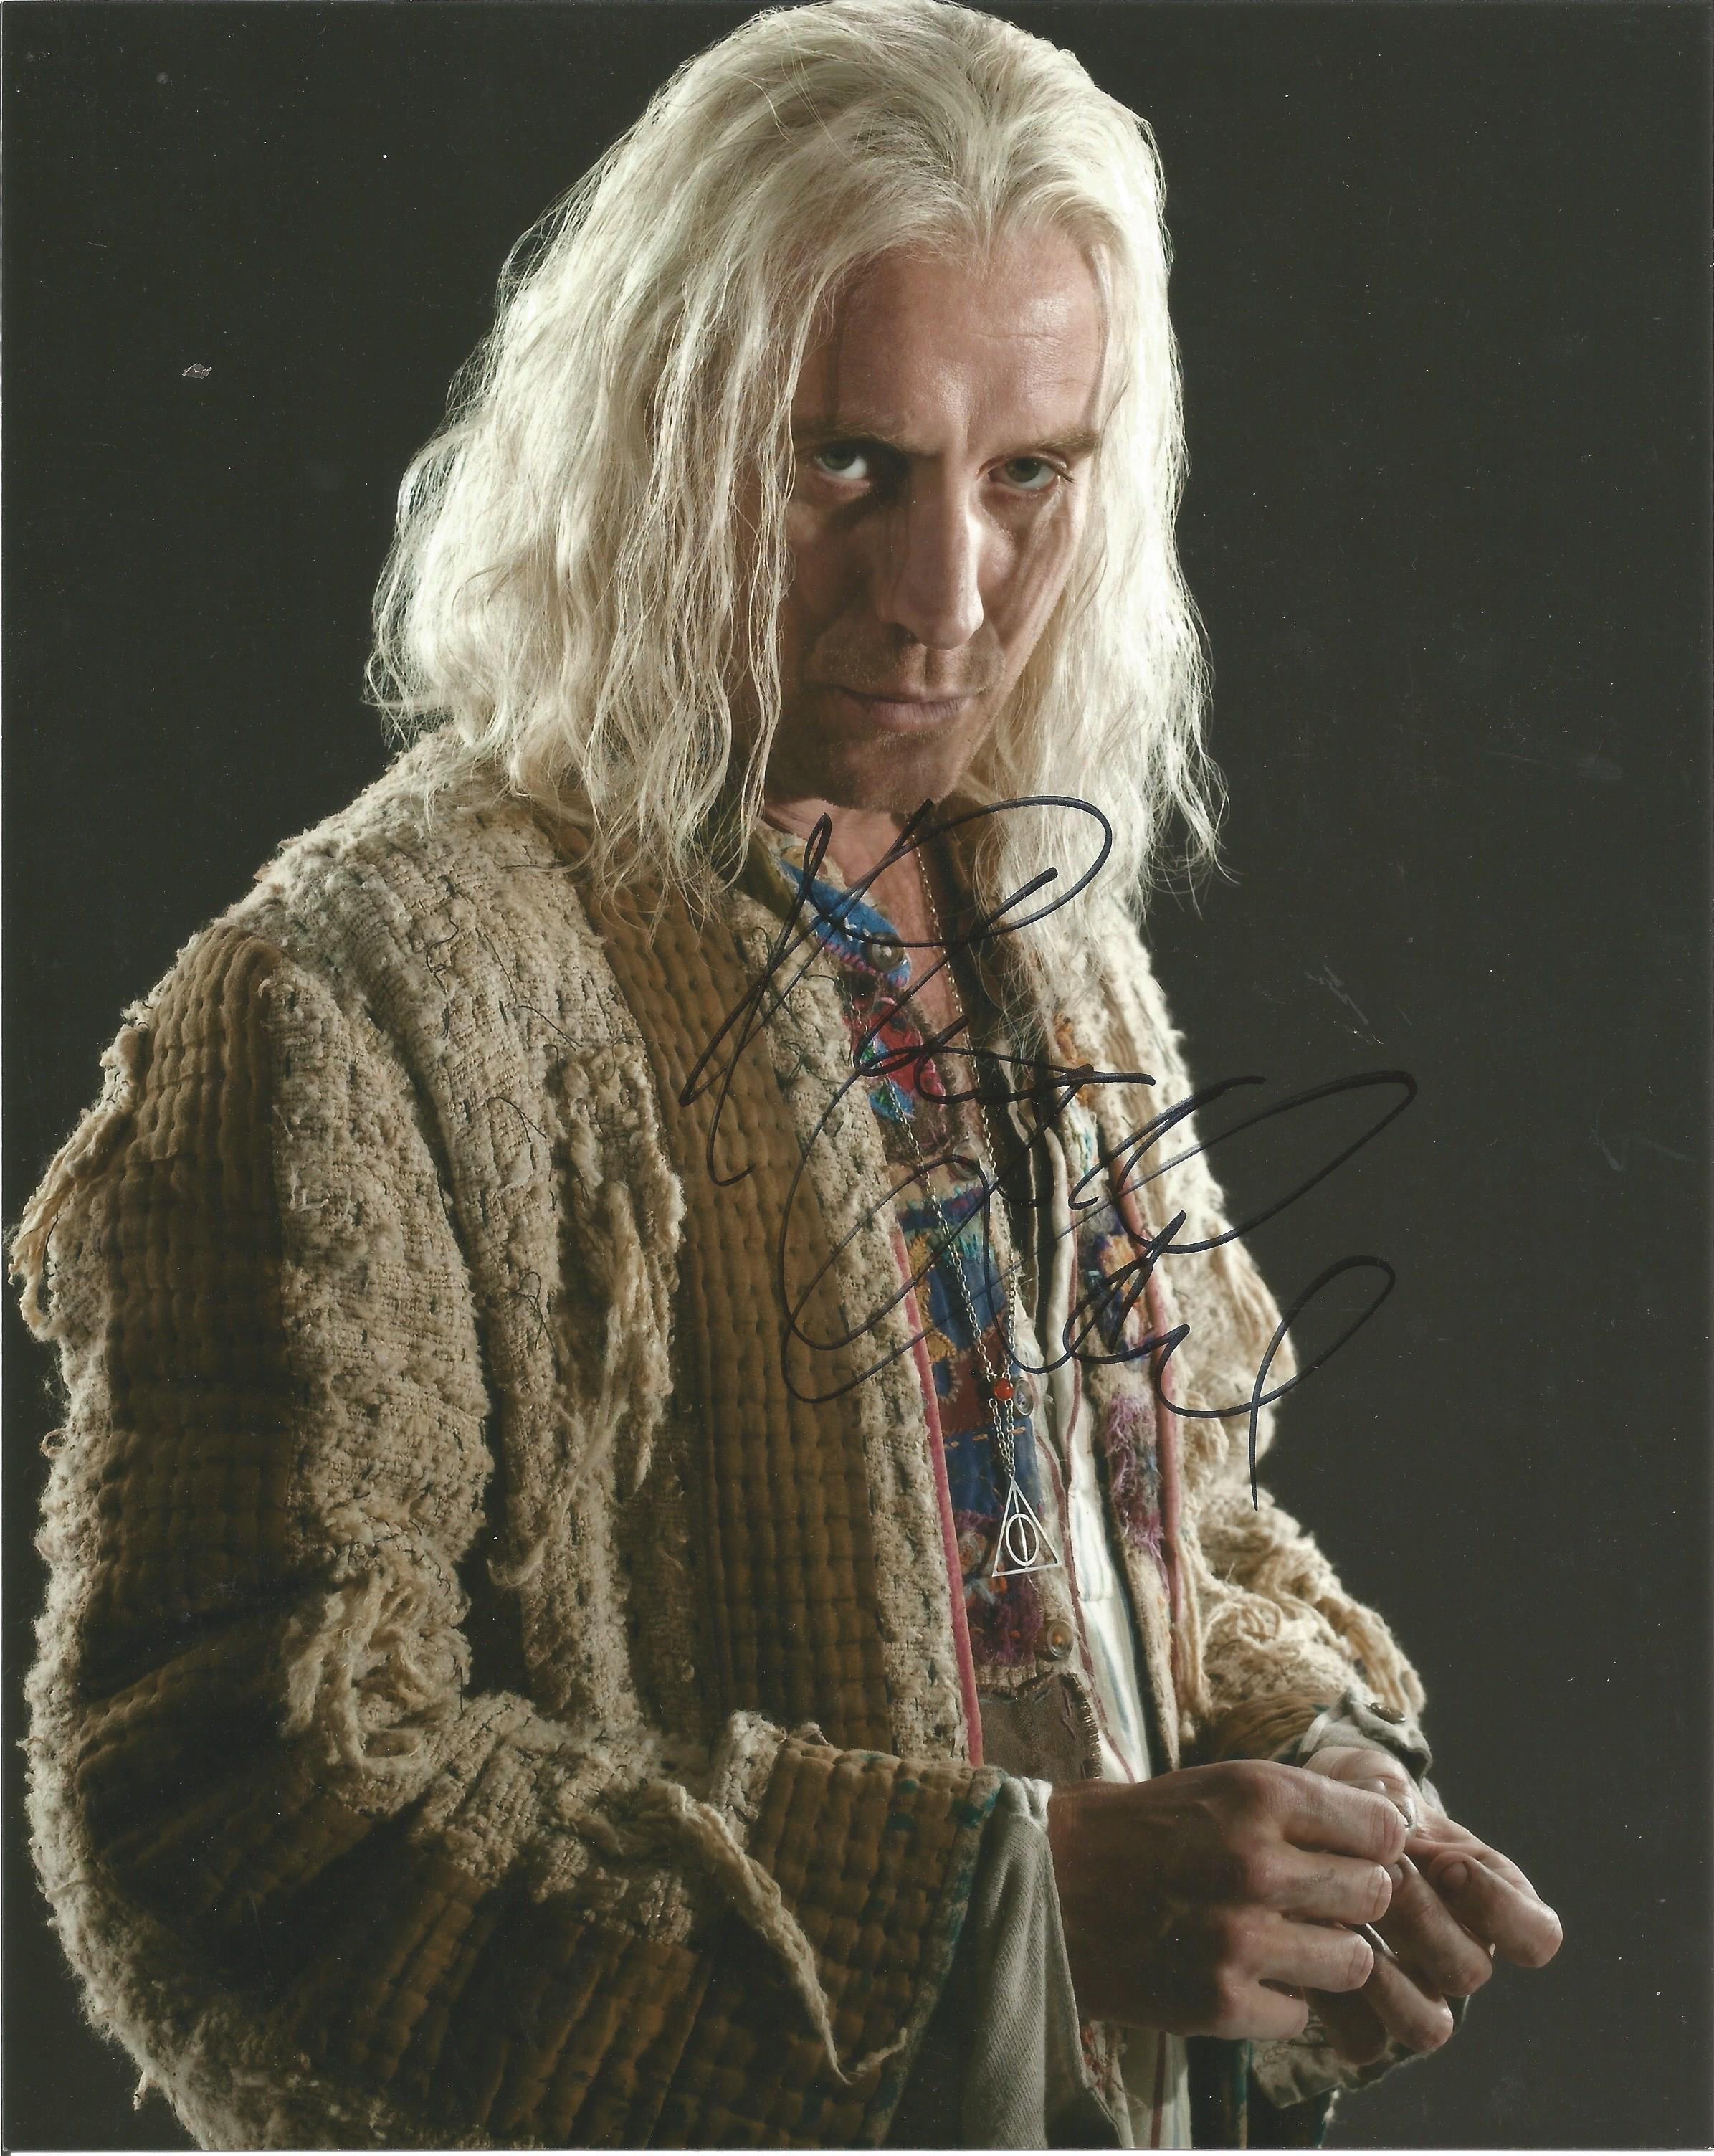 Rhys Ifans signed 10x8colour photograph pictured as he plays Xenophilius Lovegood in Harry Potter